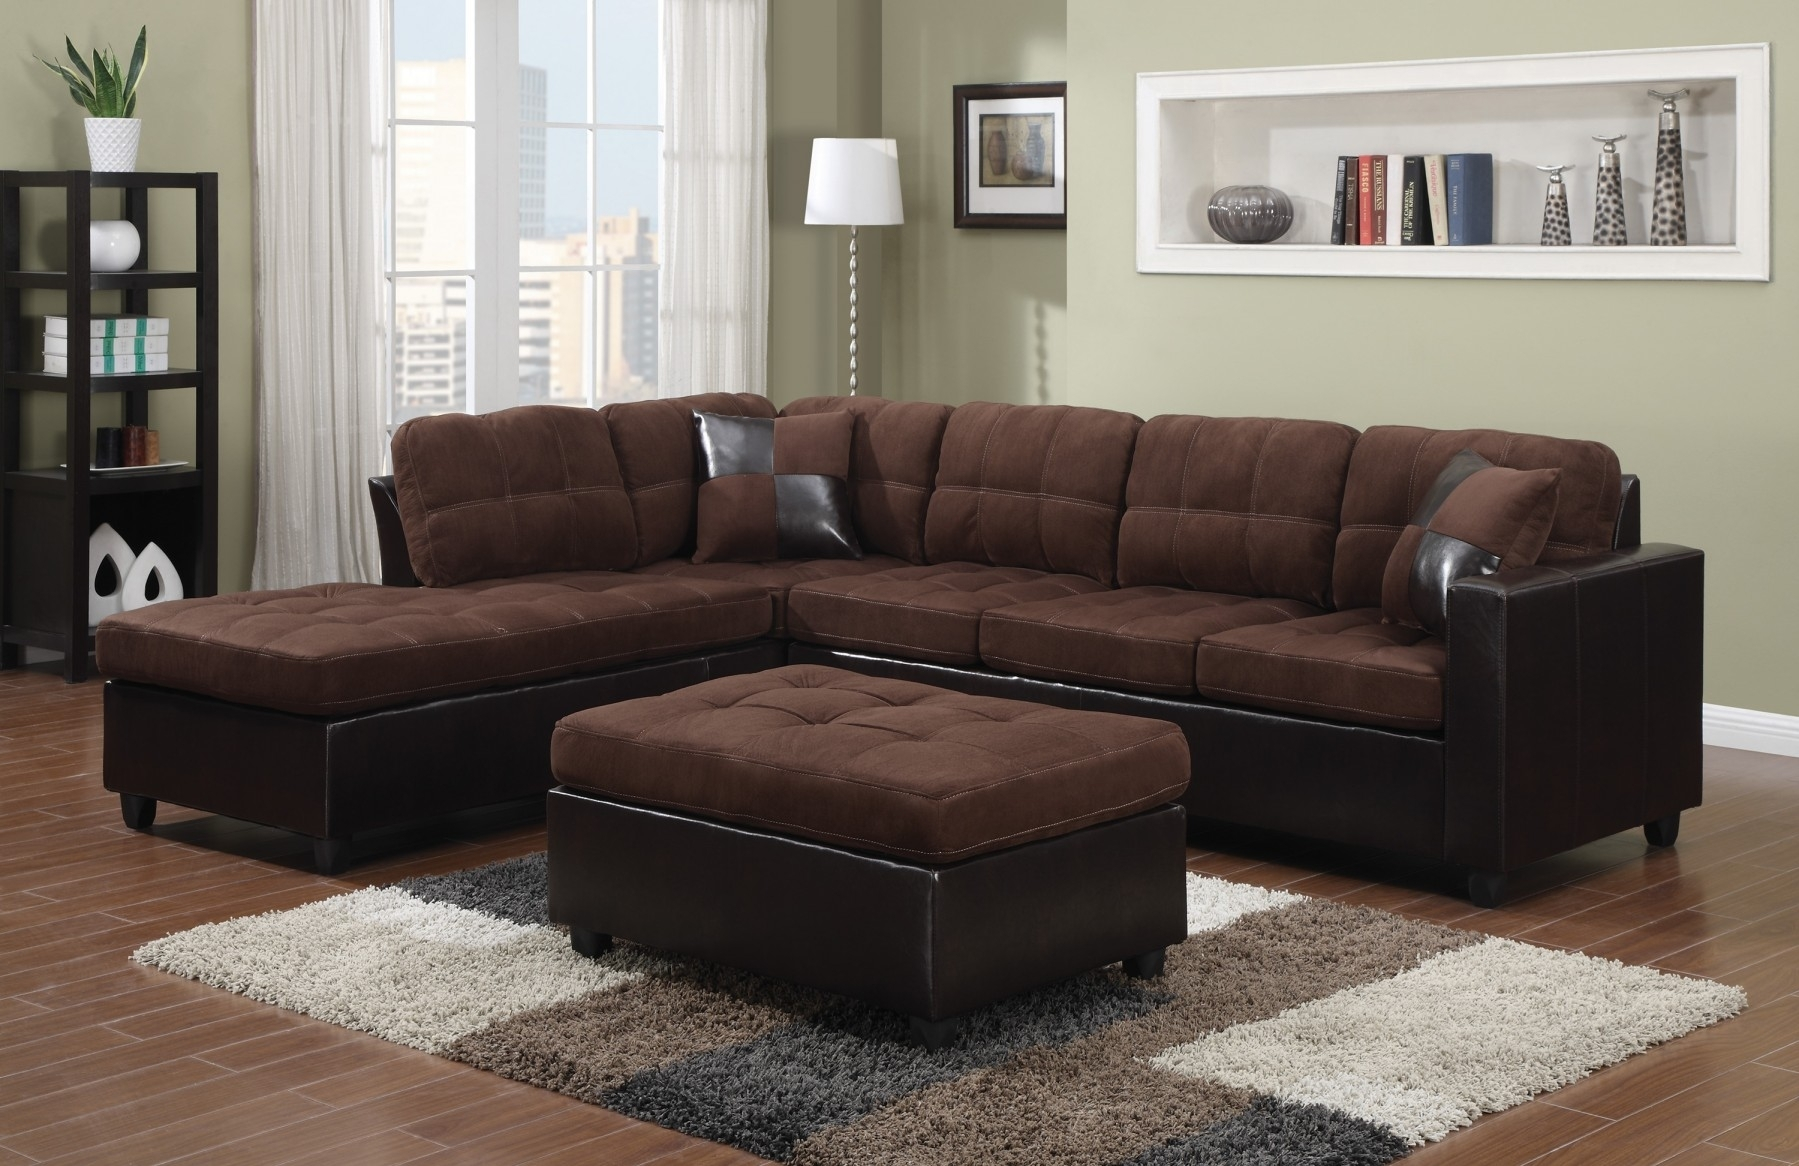 Furniture : 6 Recliner Spring Recliner Olx Sectional Sofa 6 Piece Regarding 102X102 Sectional Sofas (Image 2 of 10)